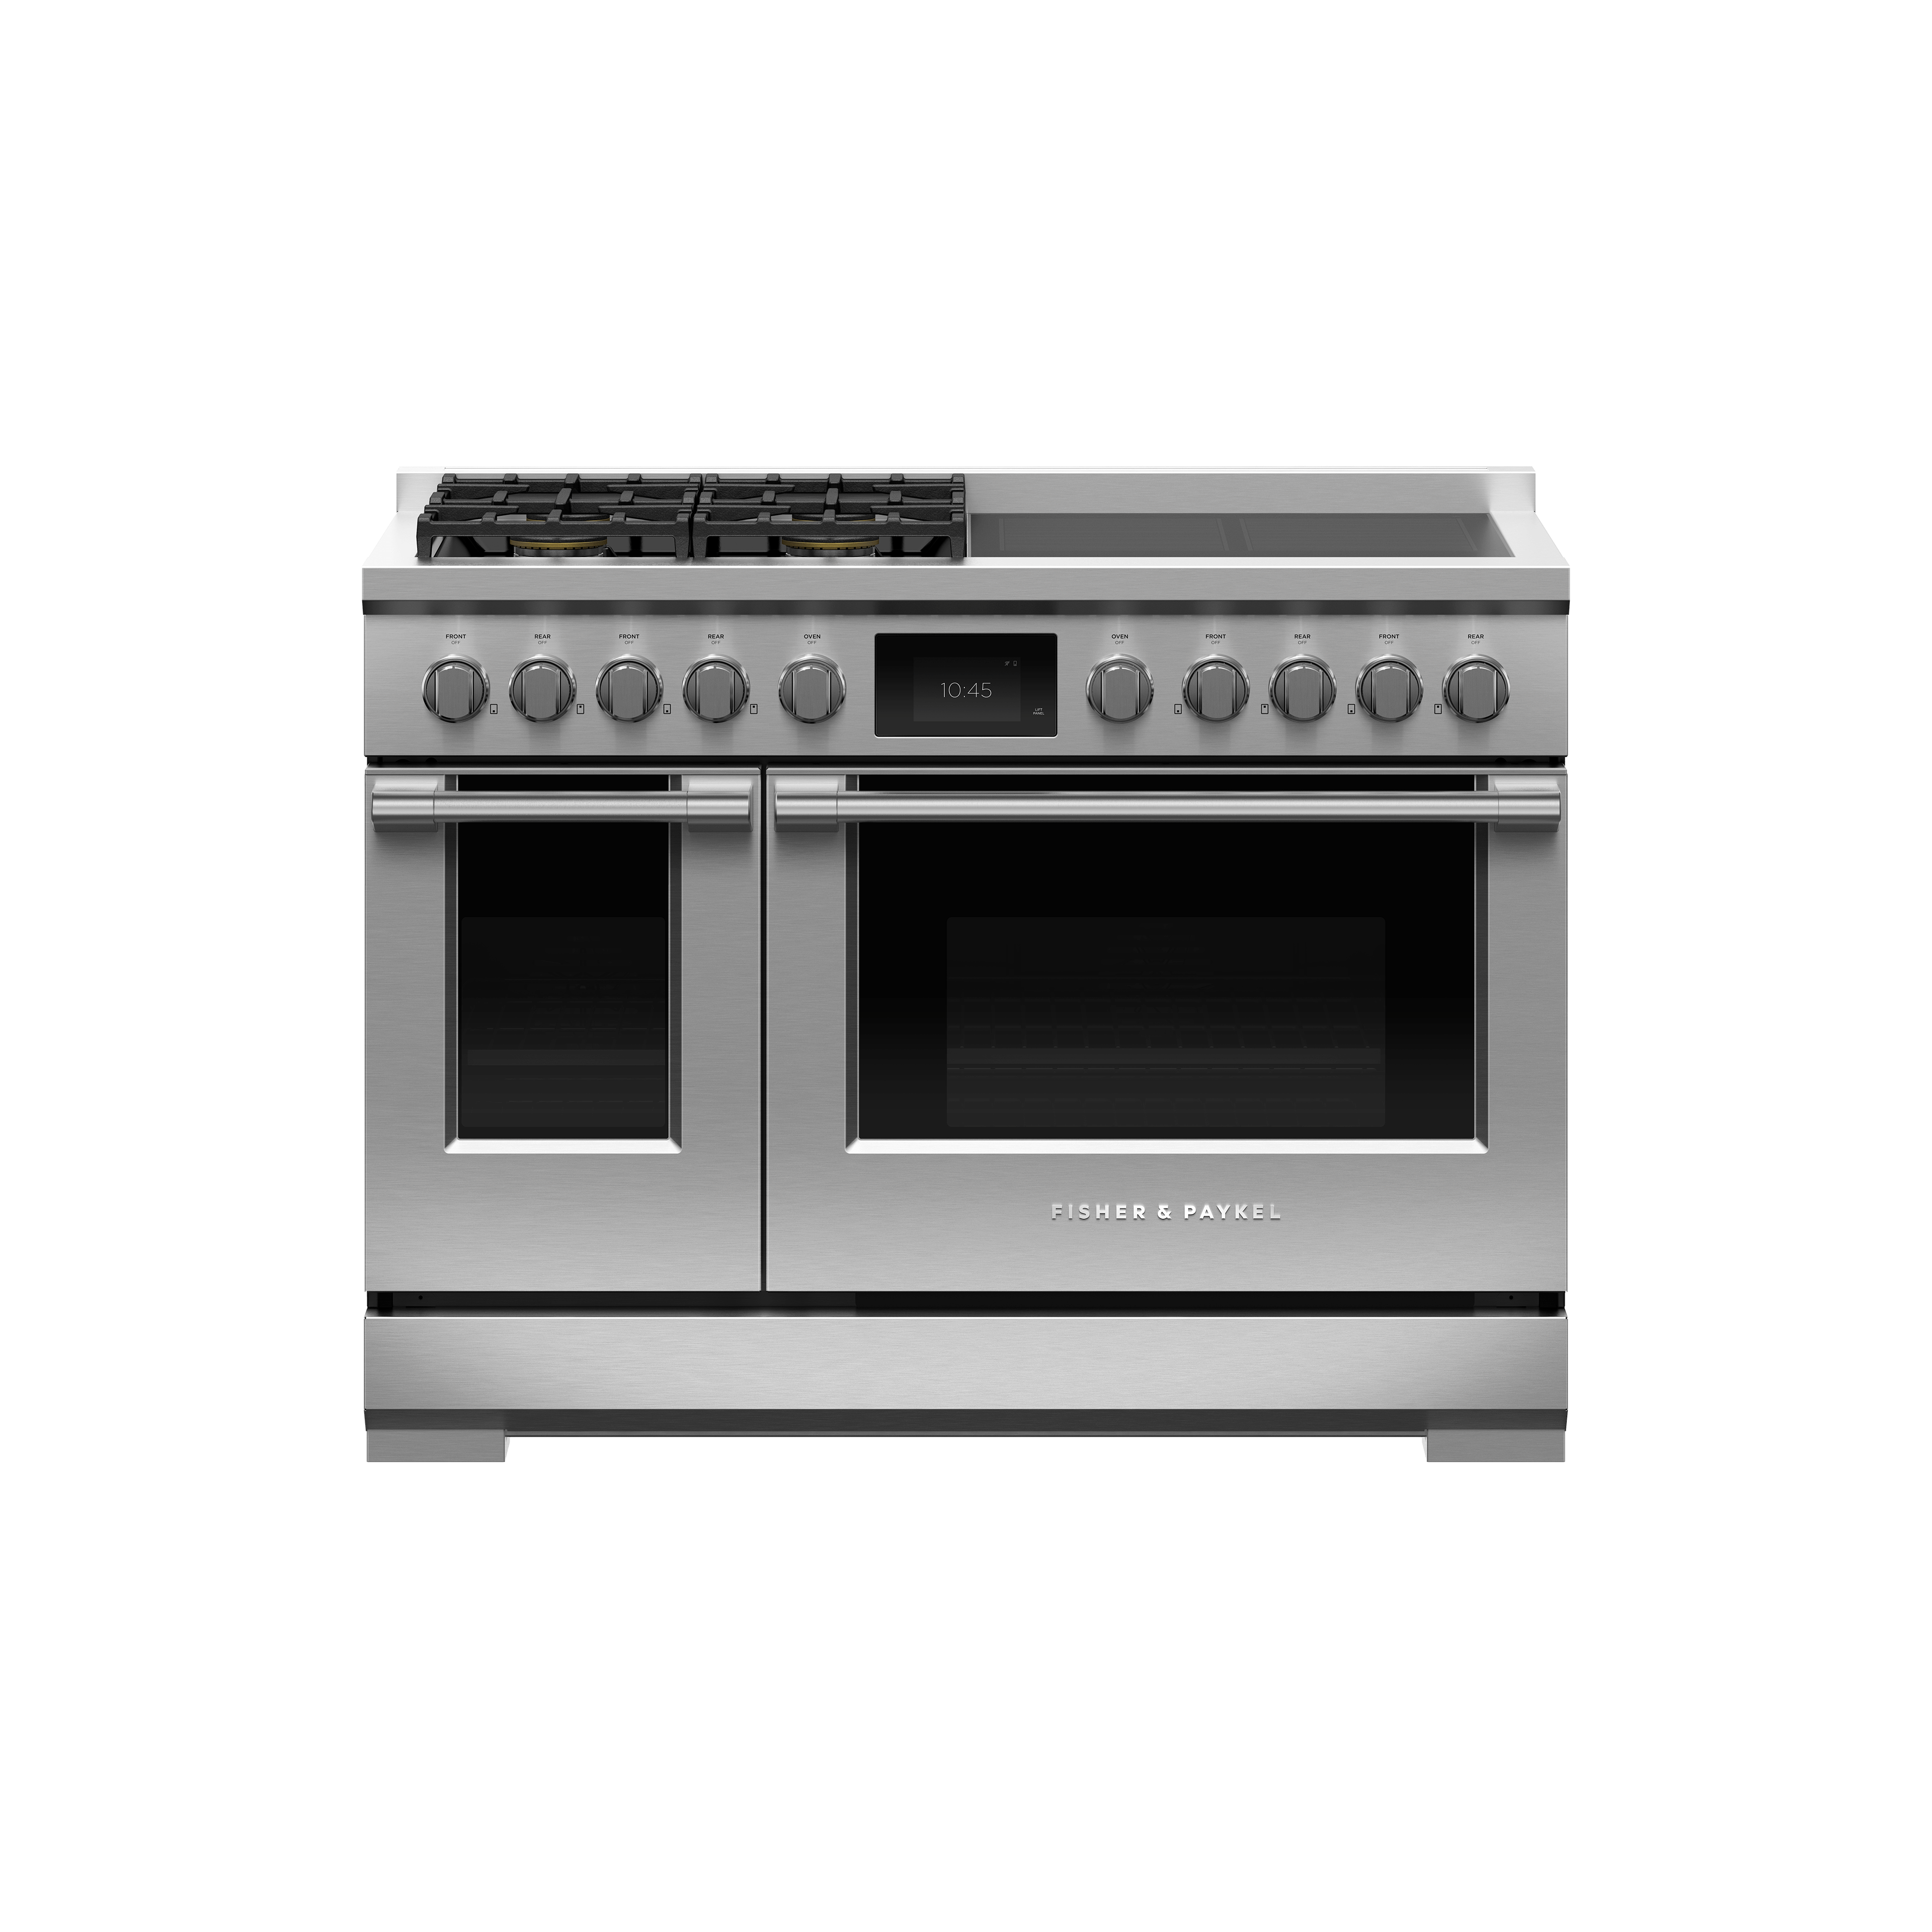 """Fisher and Paykel Dual Fuel Range, 48"""", 4 Burners, 4 Induction Zones, Self-cleaning, LPG"""